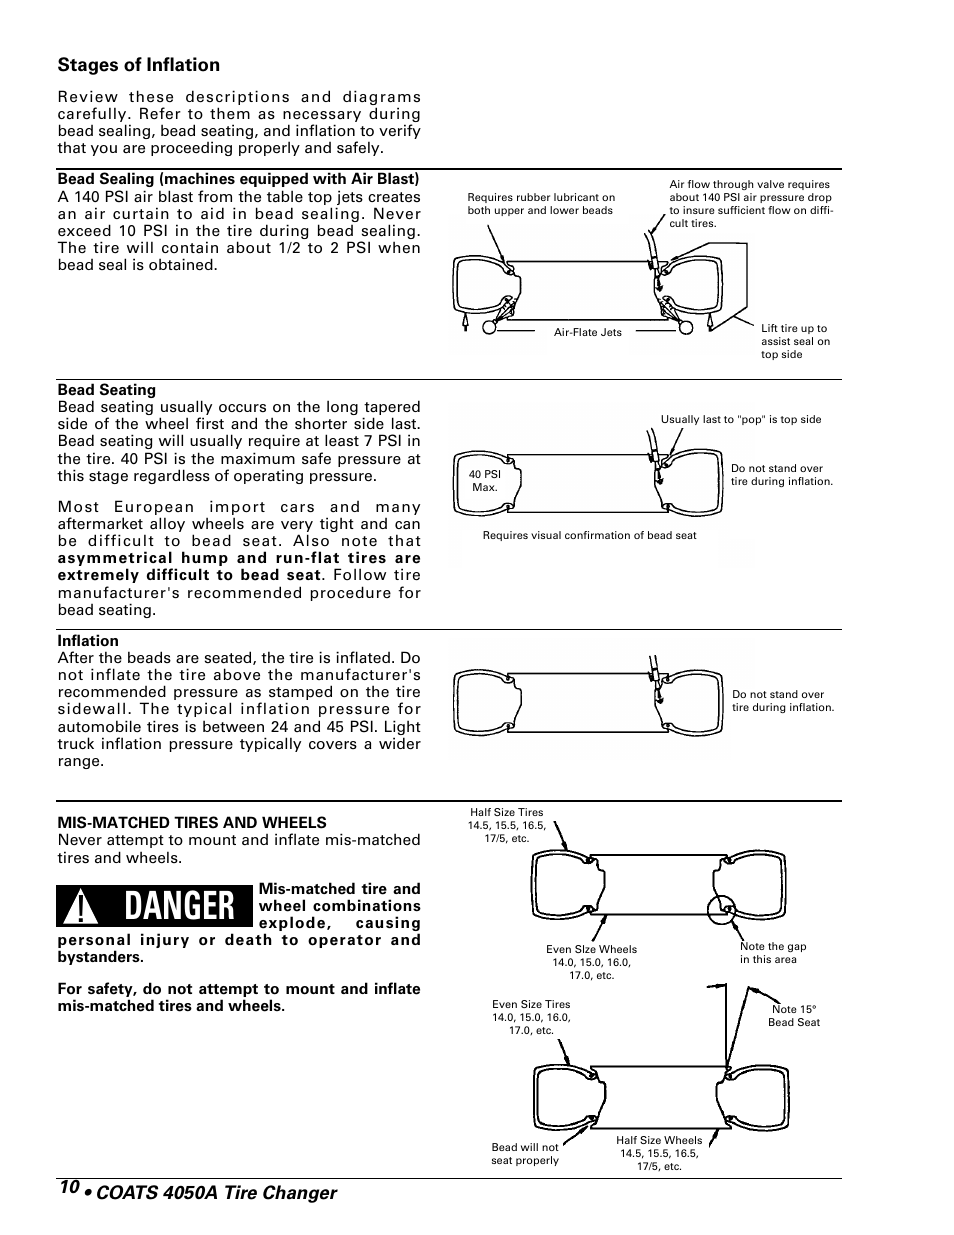 Danger, Stages of inflation | COATS 4050A Tire Changer User Manual | Page  12 / 16